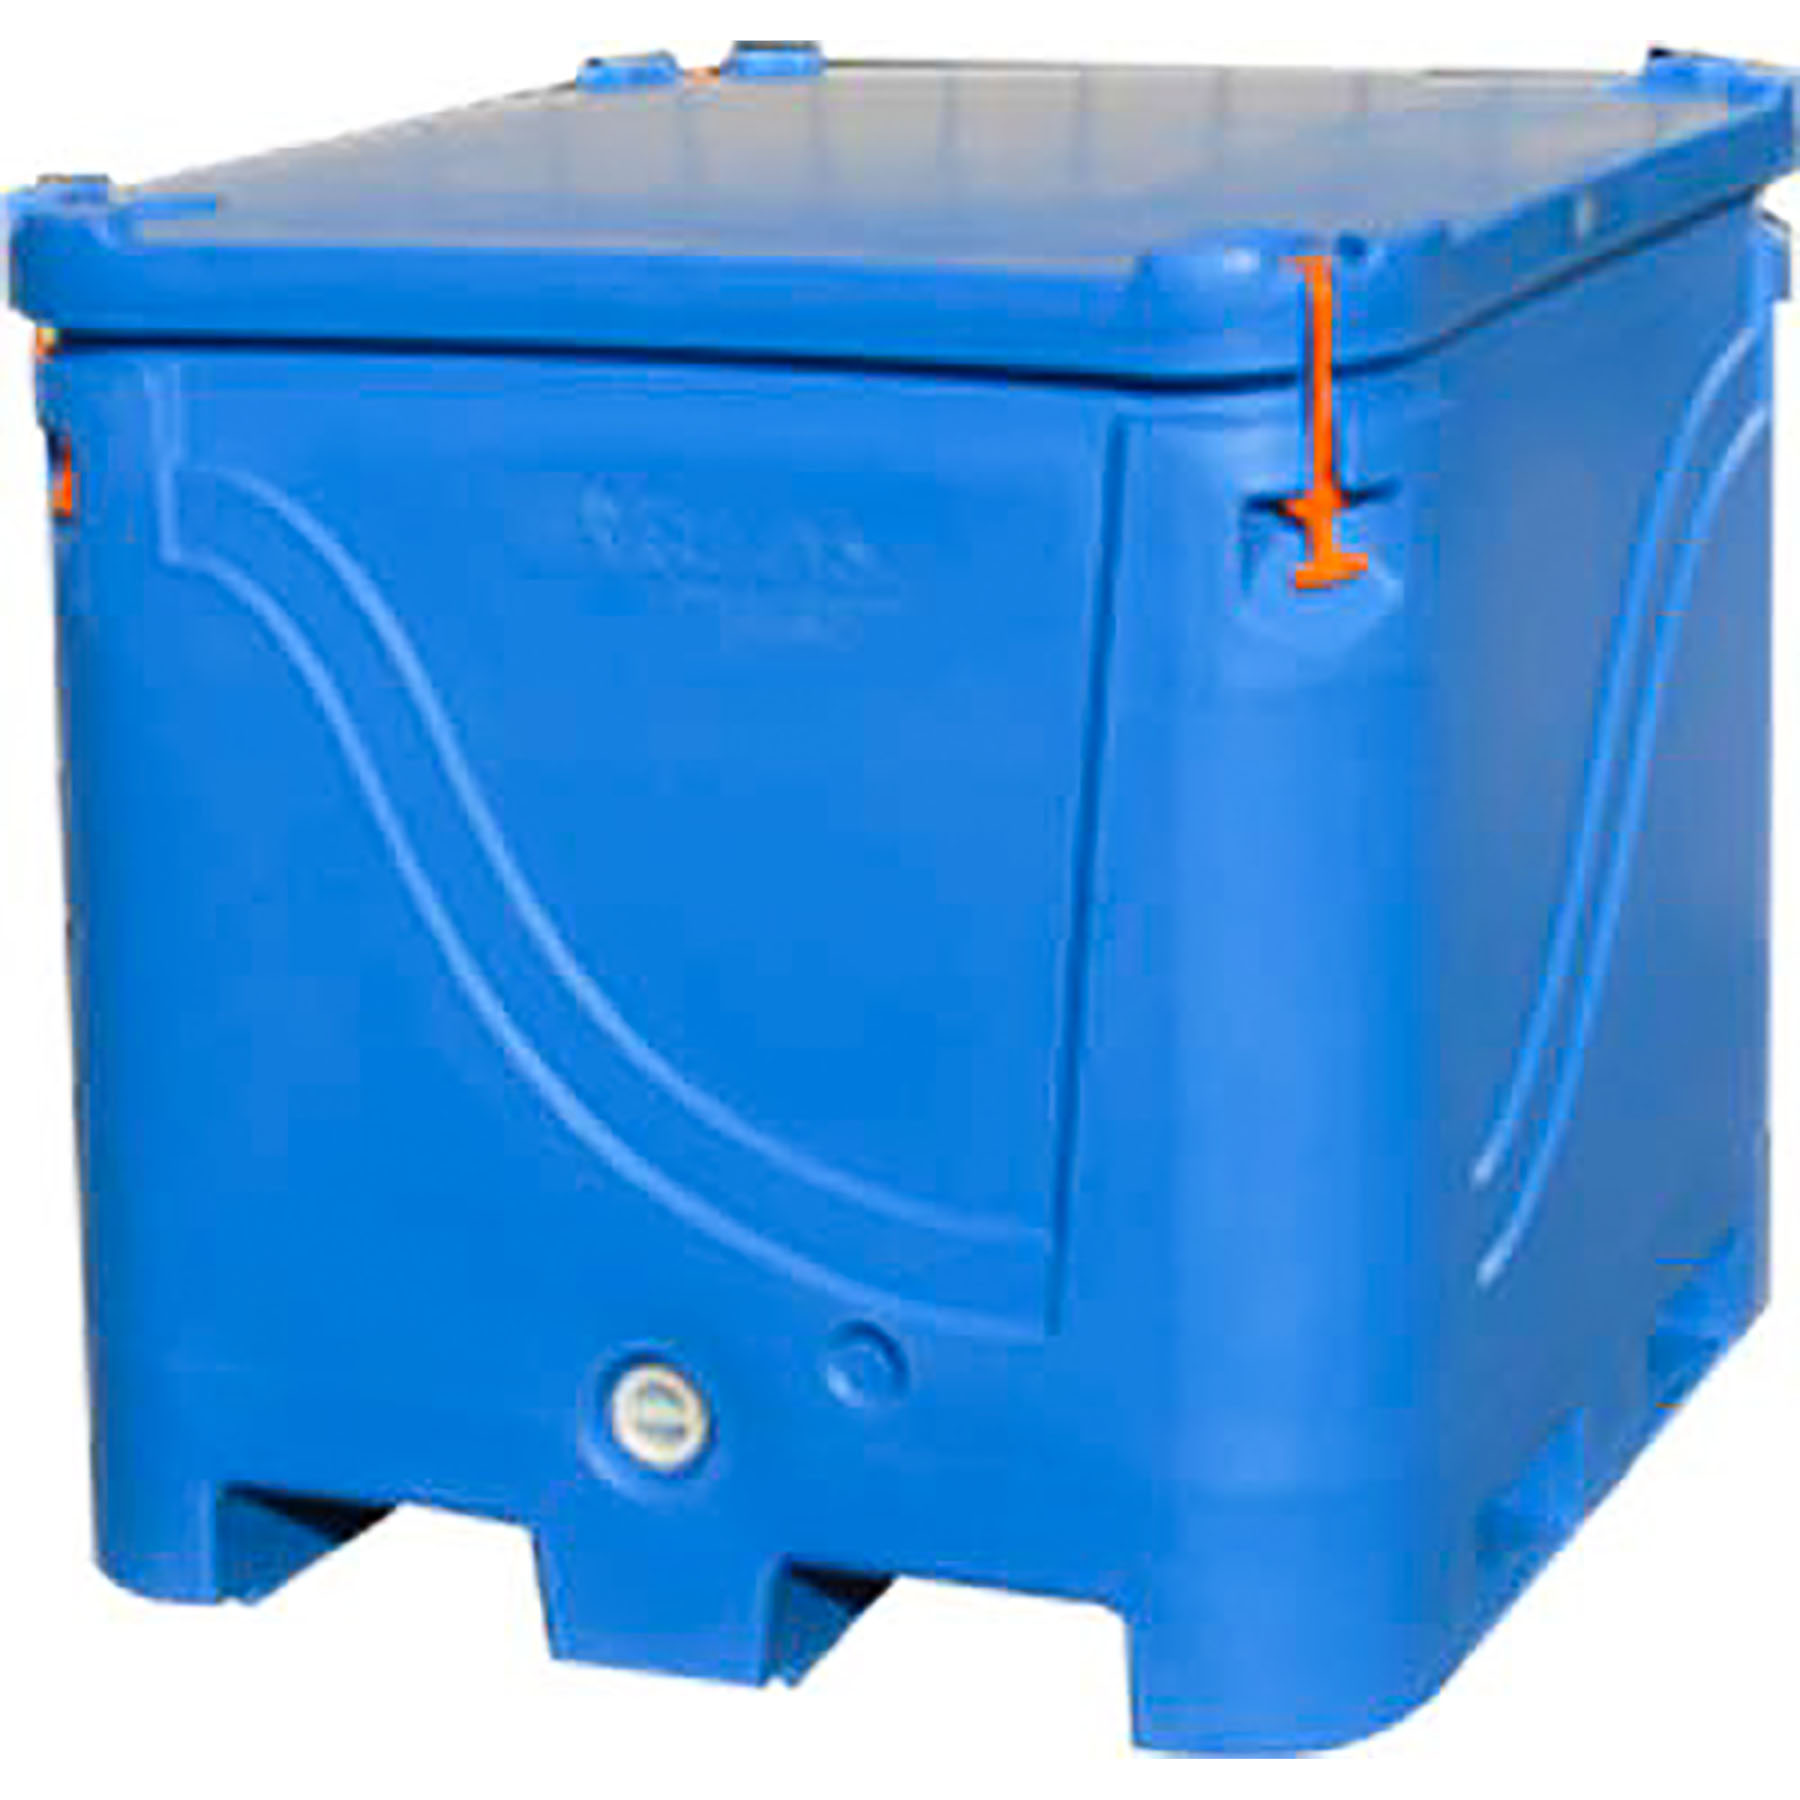 Insulated Bins